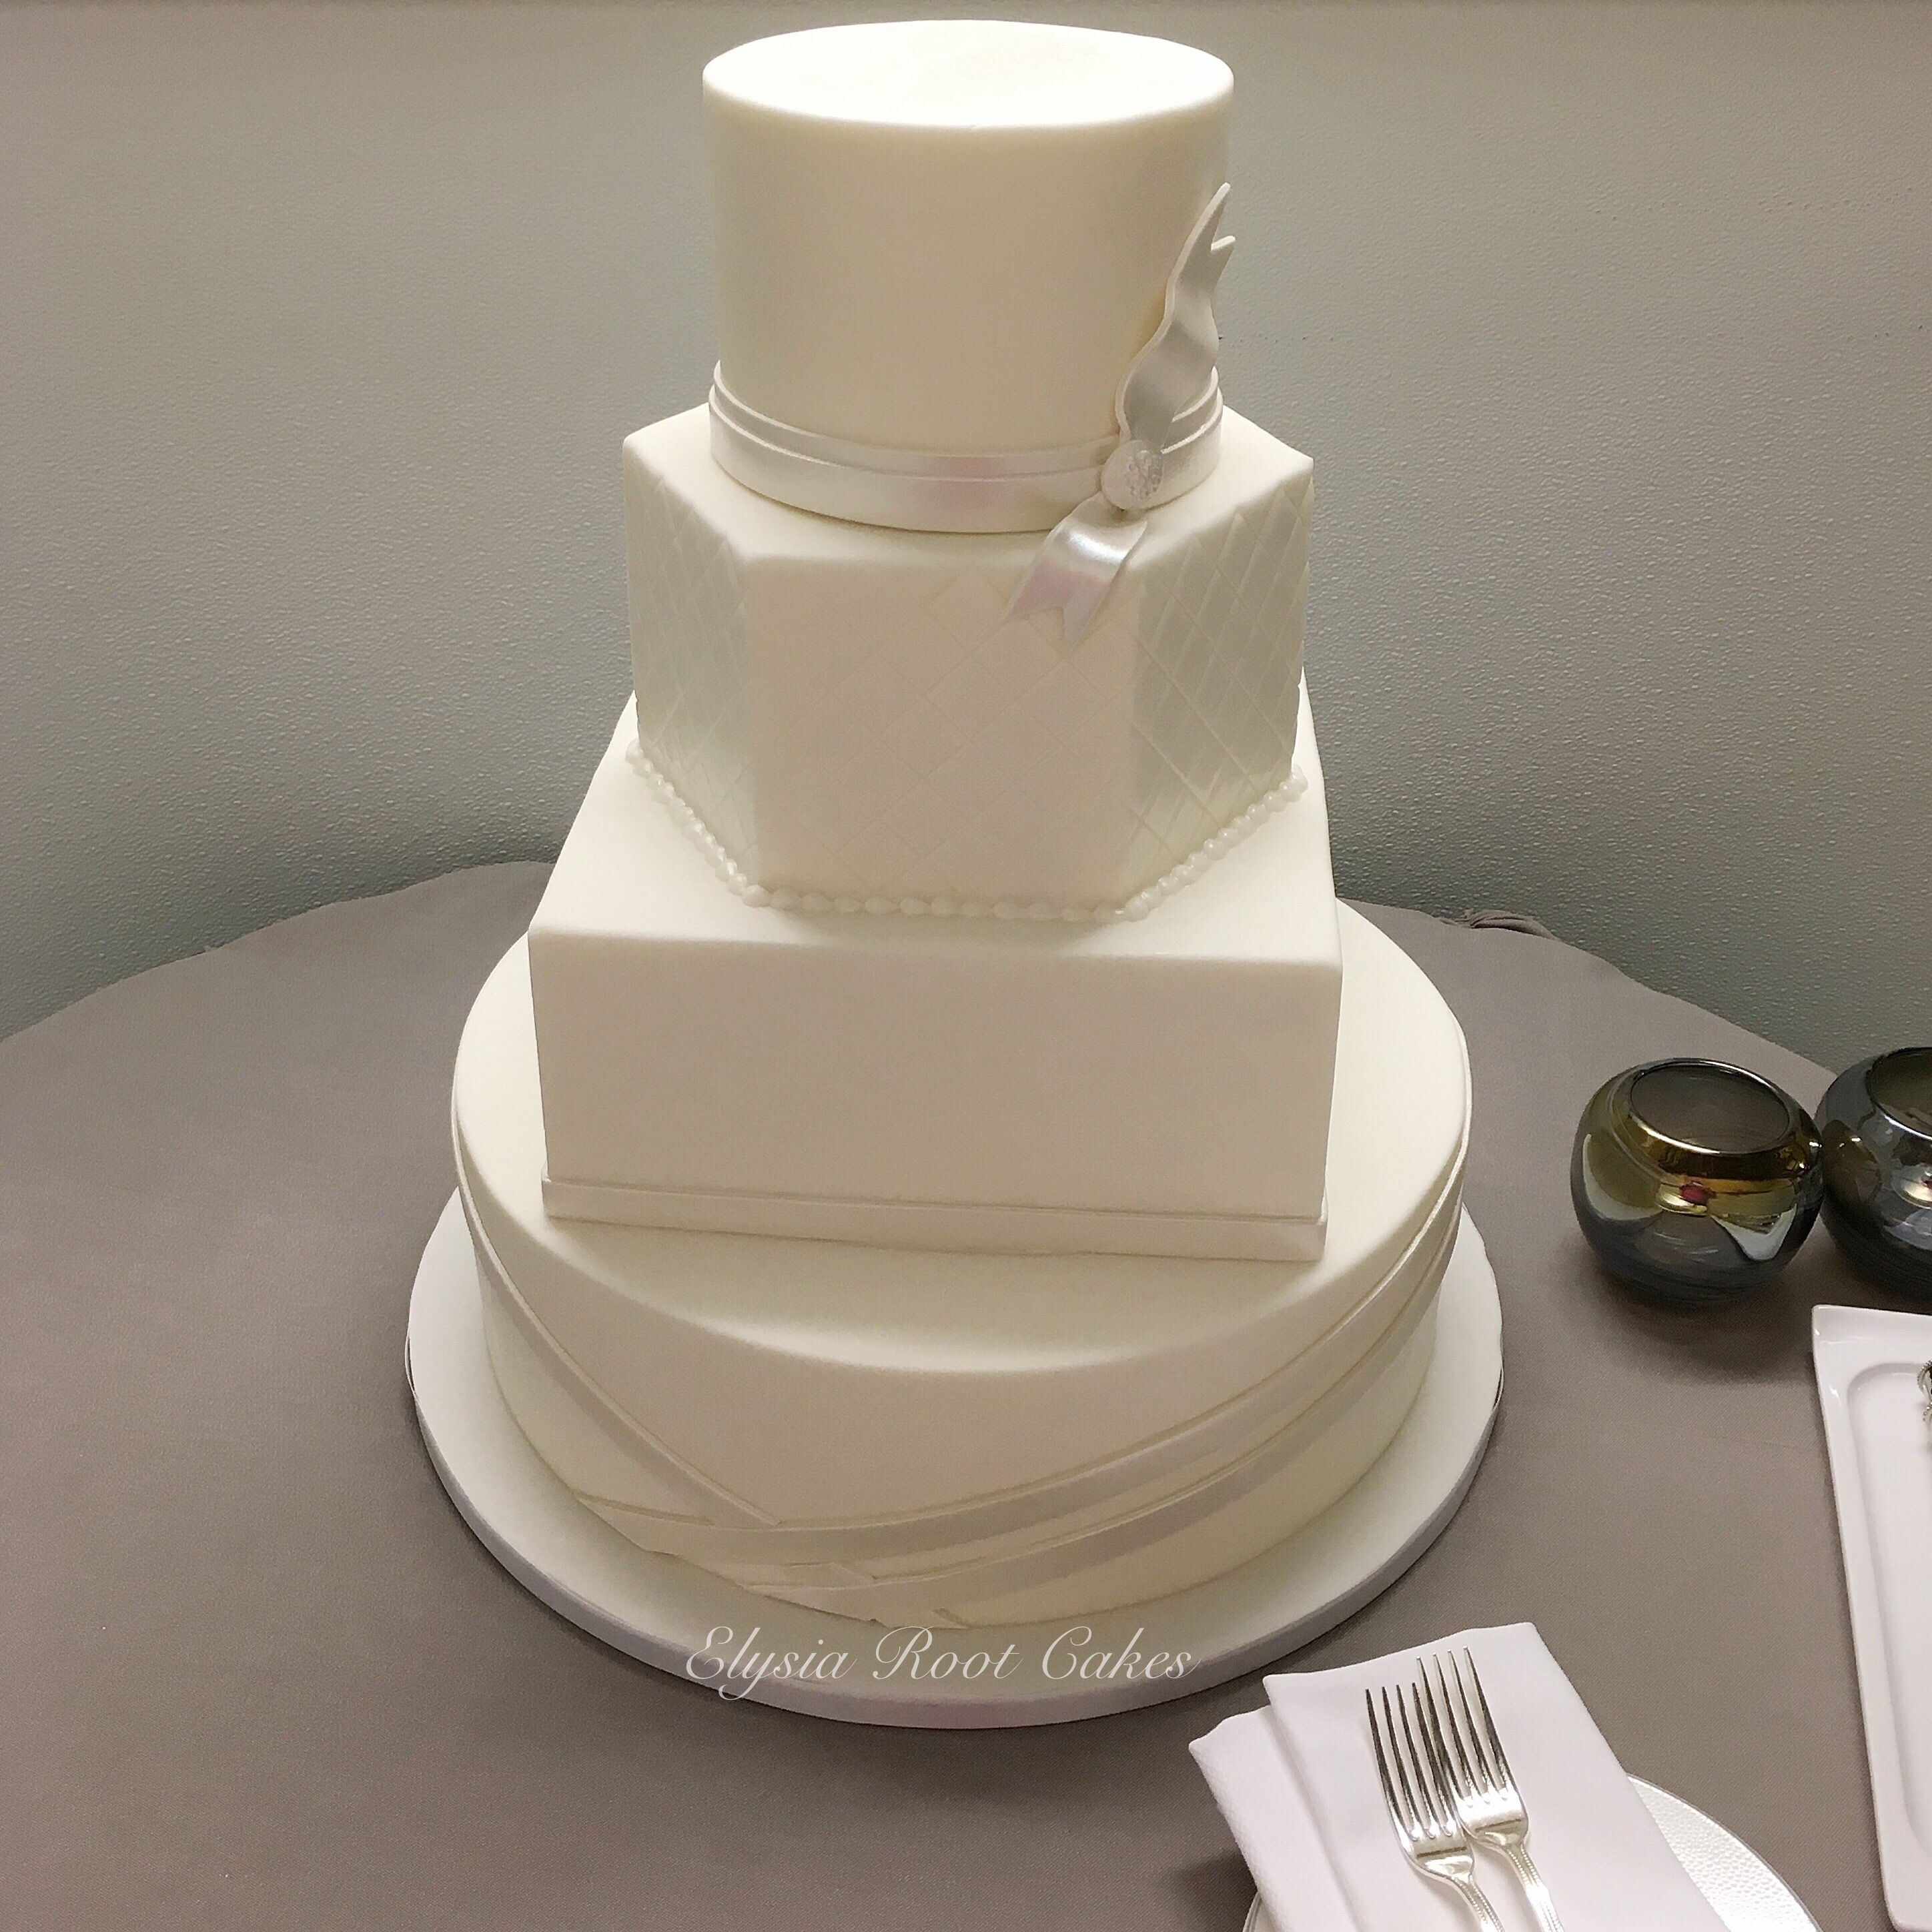 Weure loving all of the different shaped tiers for this wedding cake